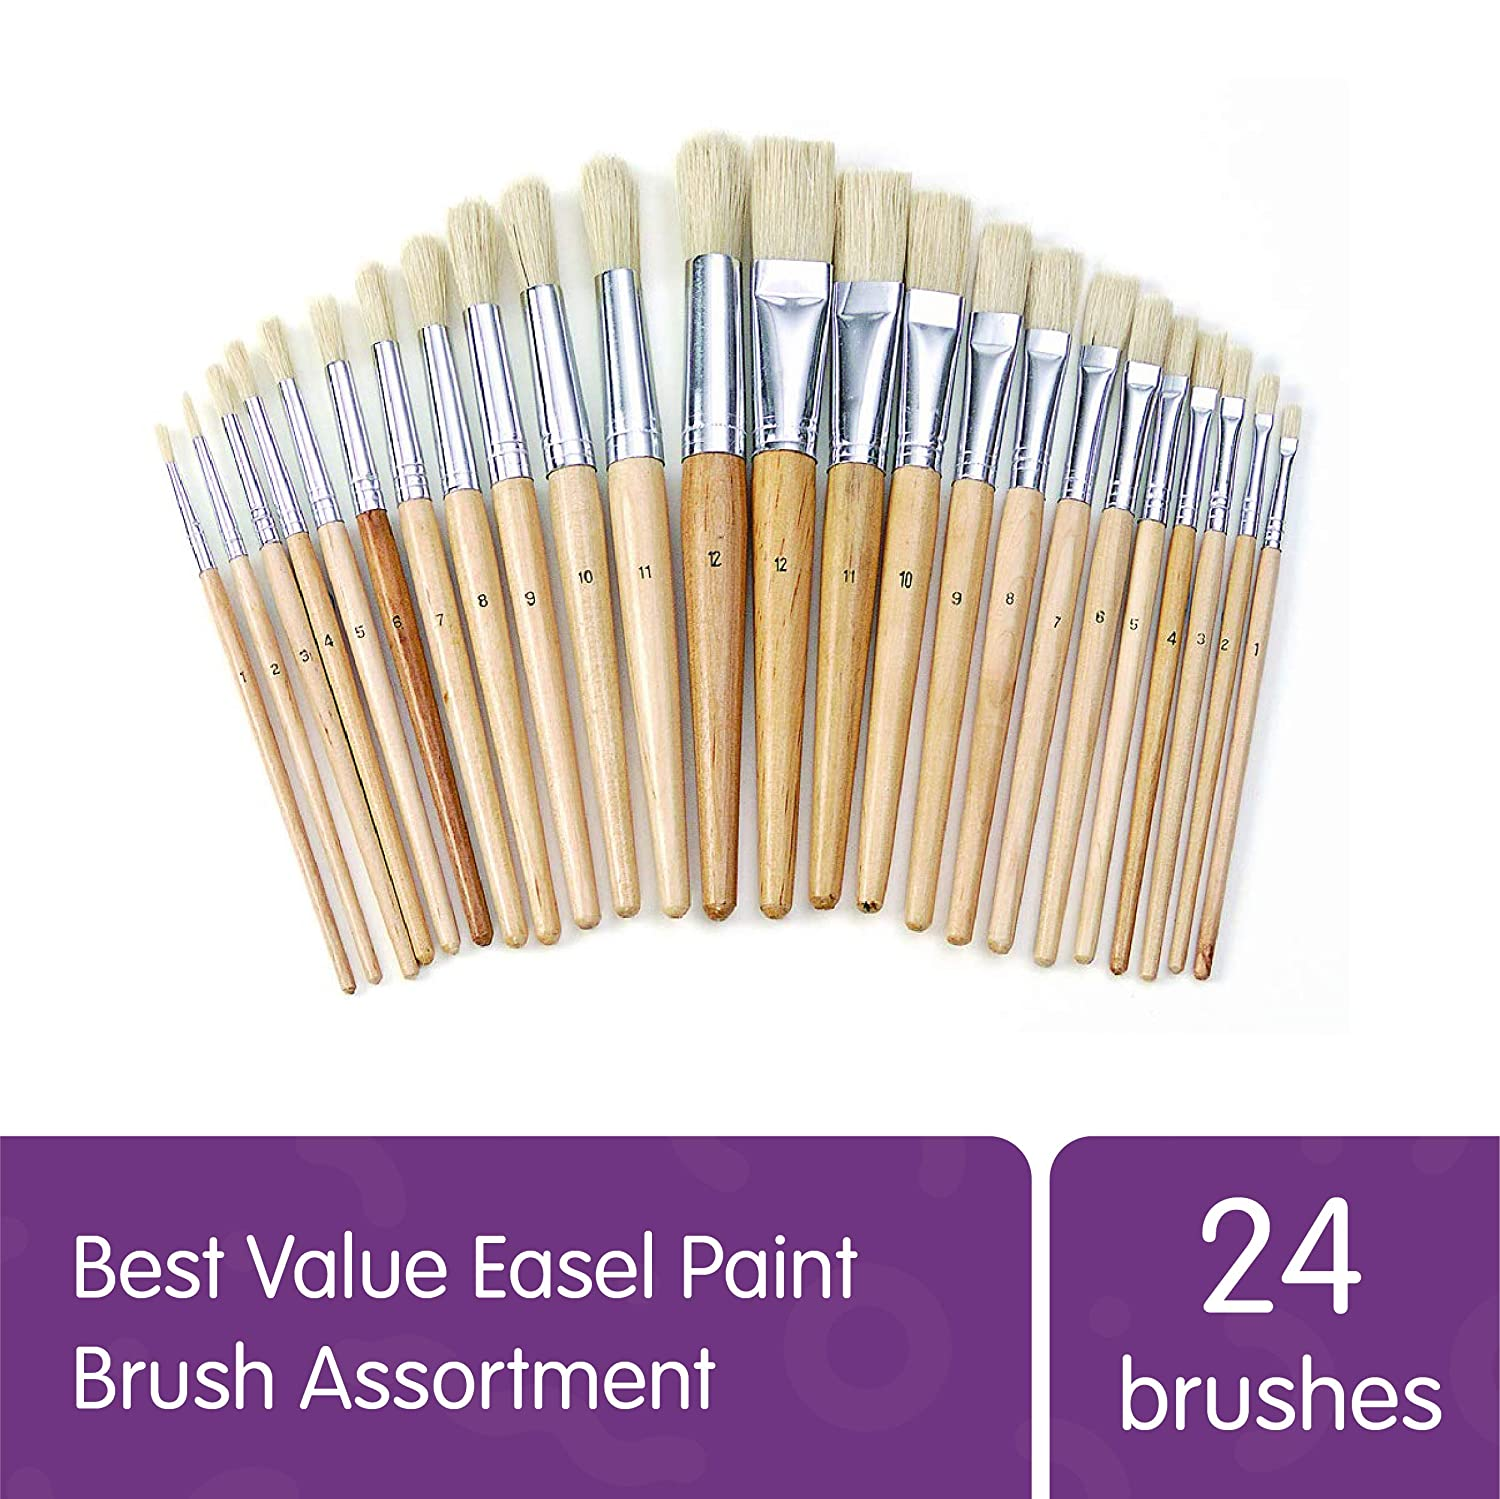 24 Pack Colorations Easel Paint Brushes Assortment Value Pack Classroom Size Art Supplies for Painting Item # FULLSET